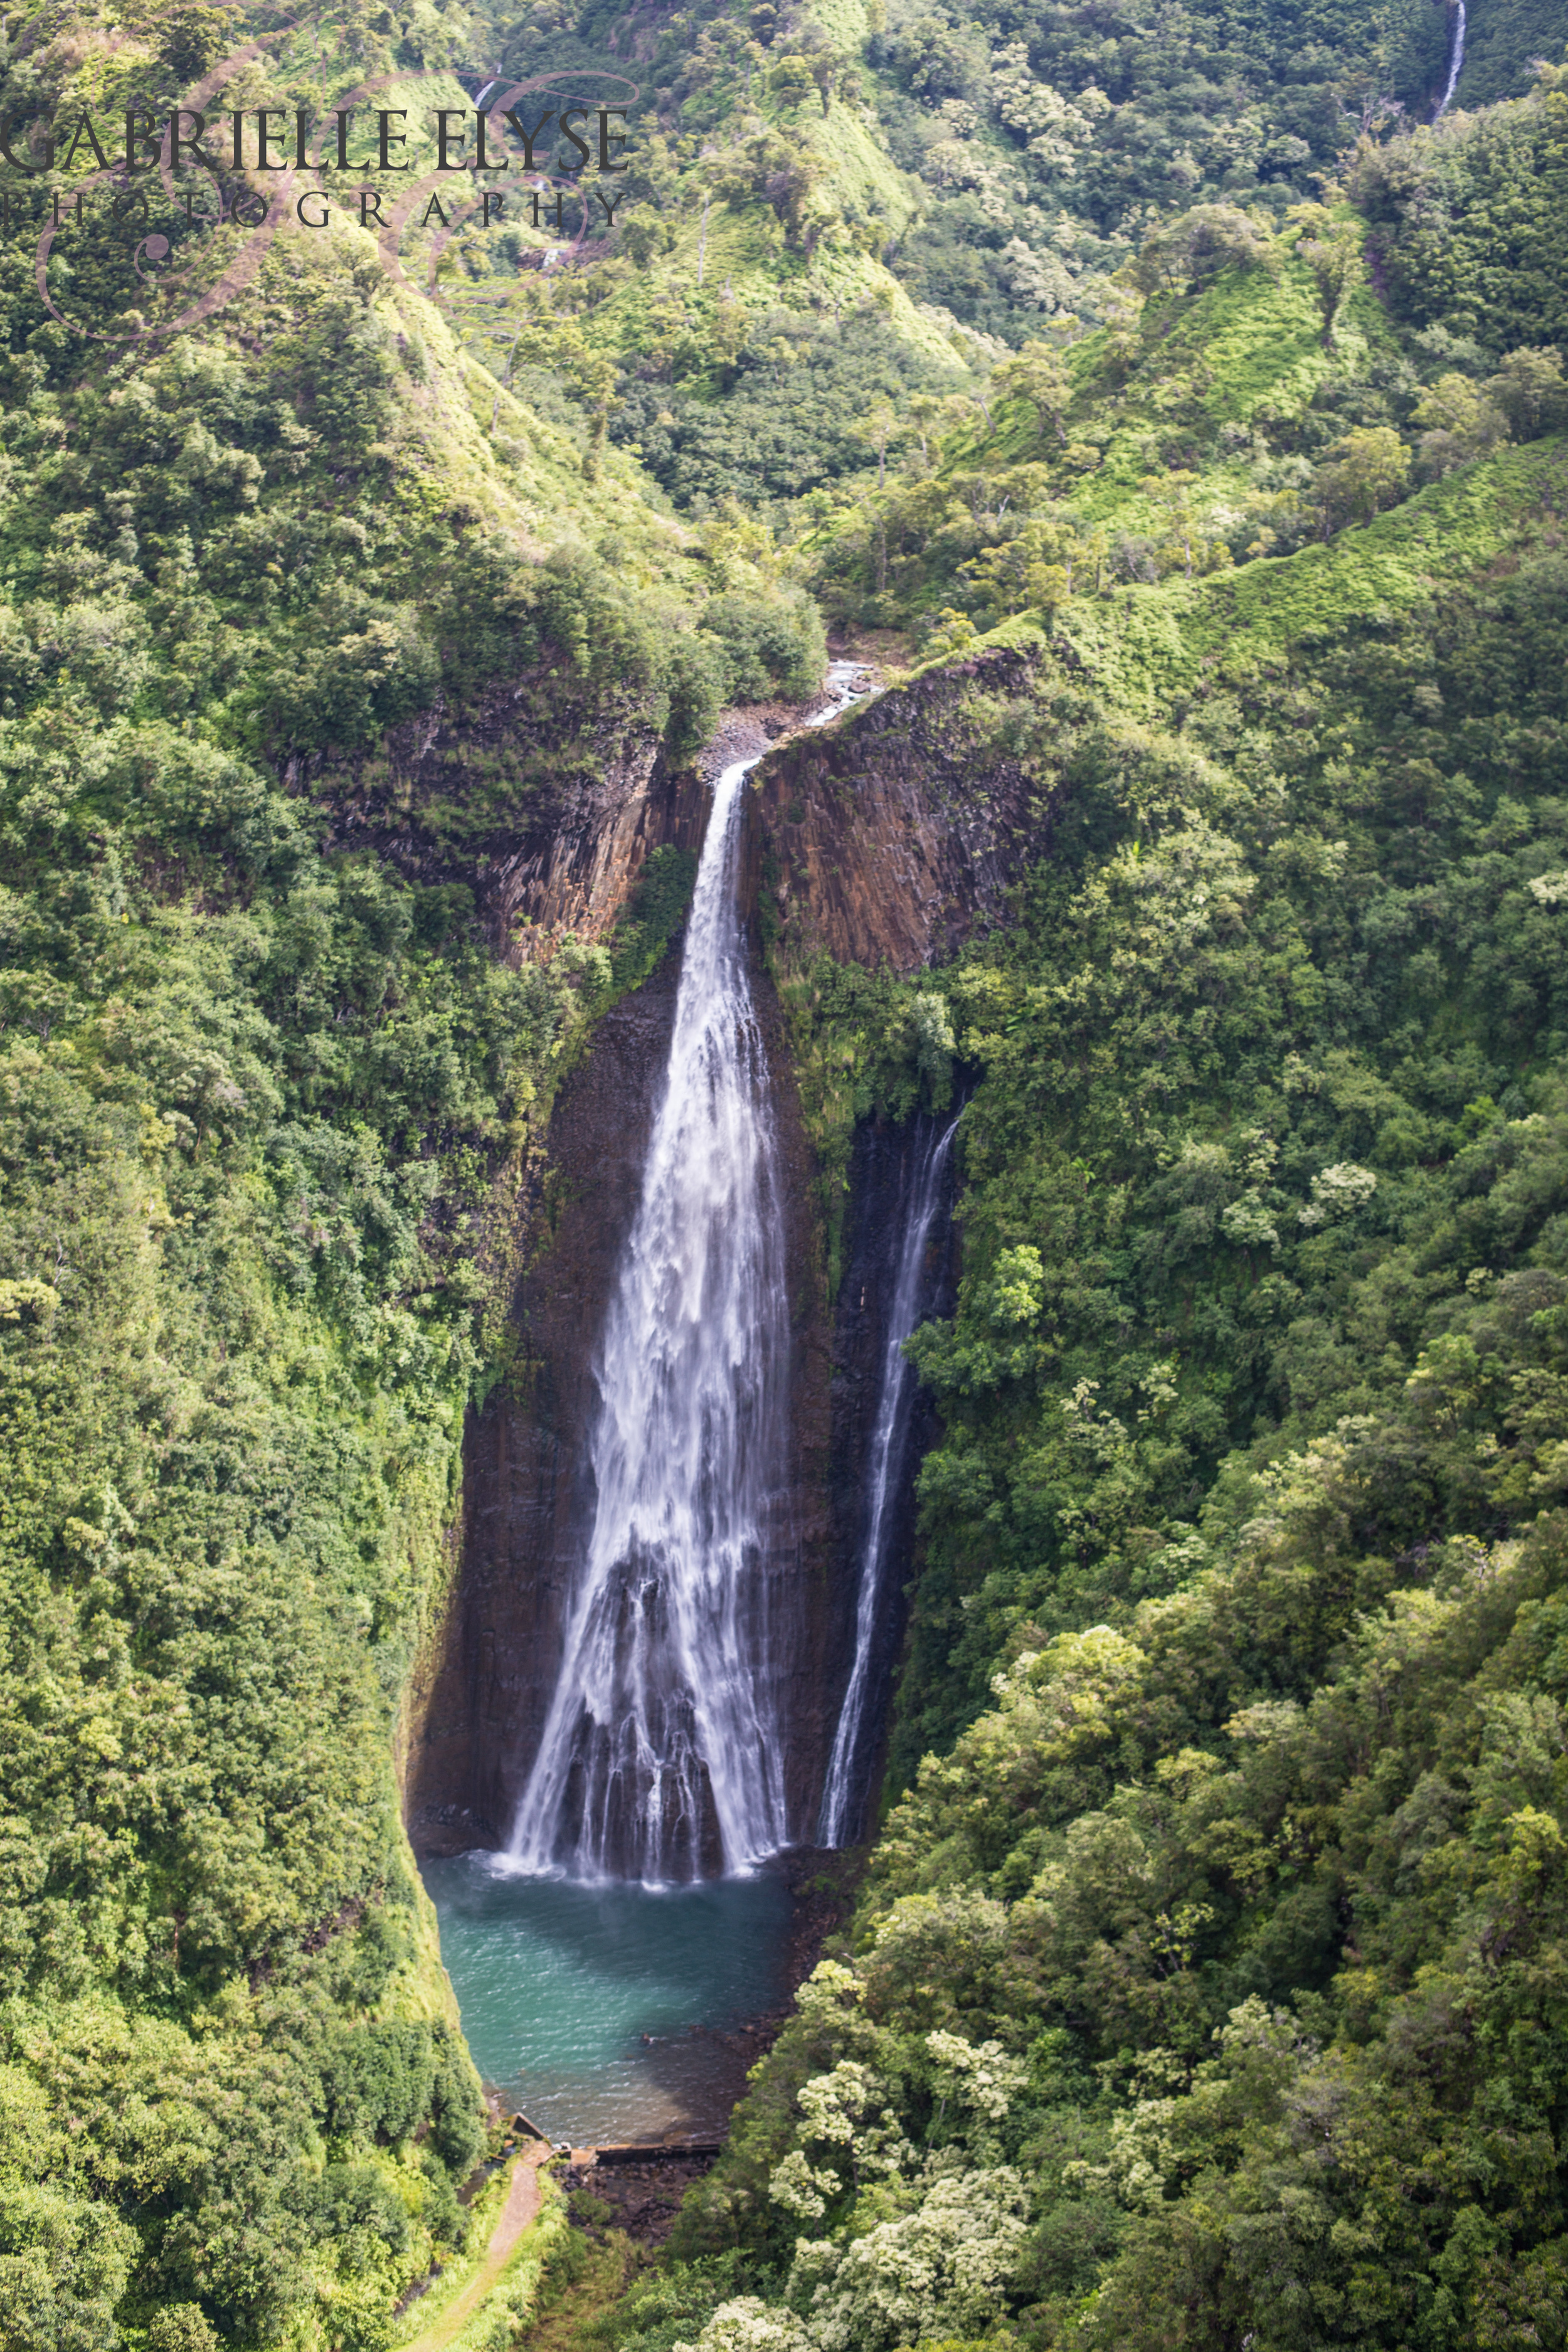 The waterfall from the first Jurassic Park - Manawaiopuna Falls. GORGEOUS, but no dinosaurs